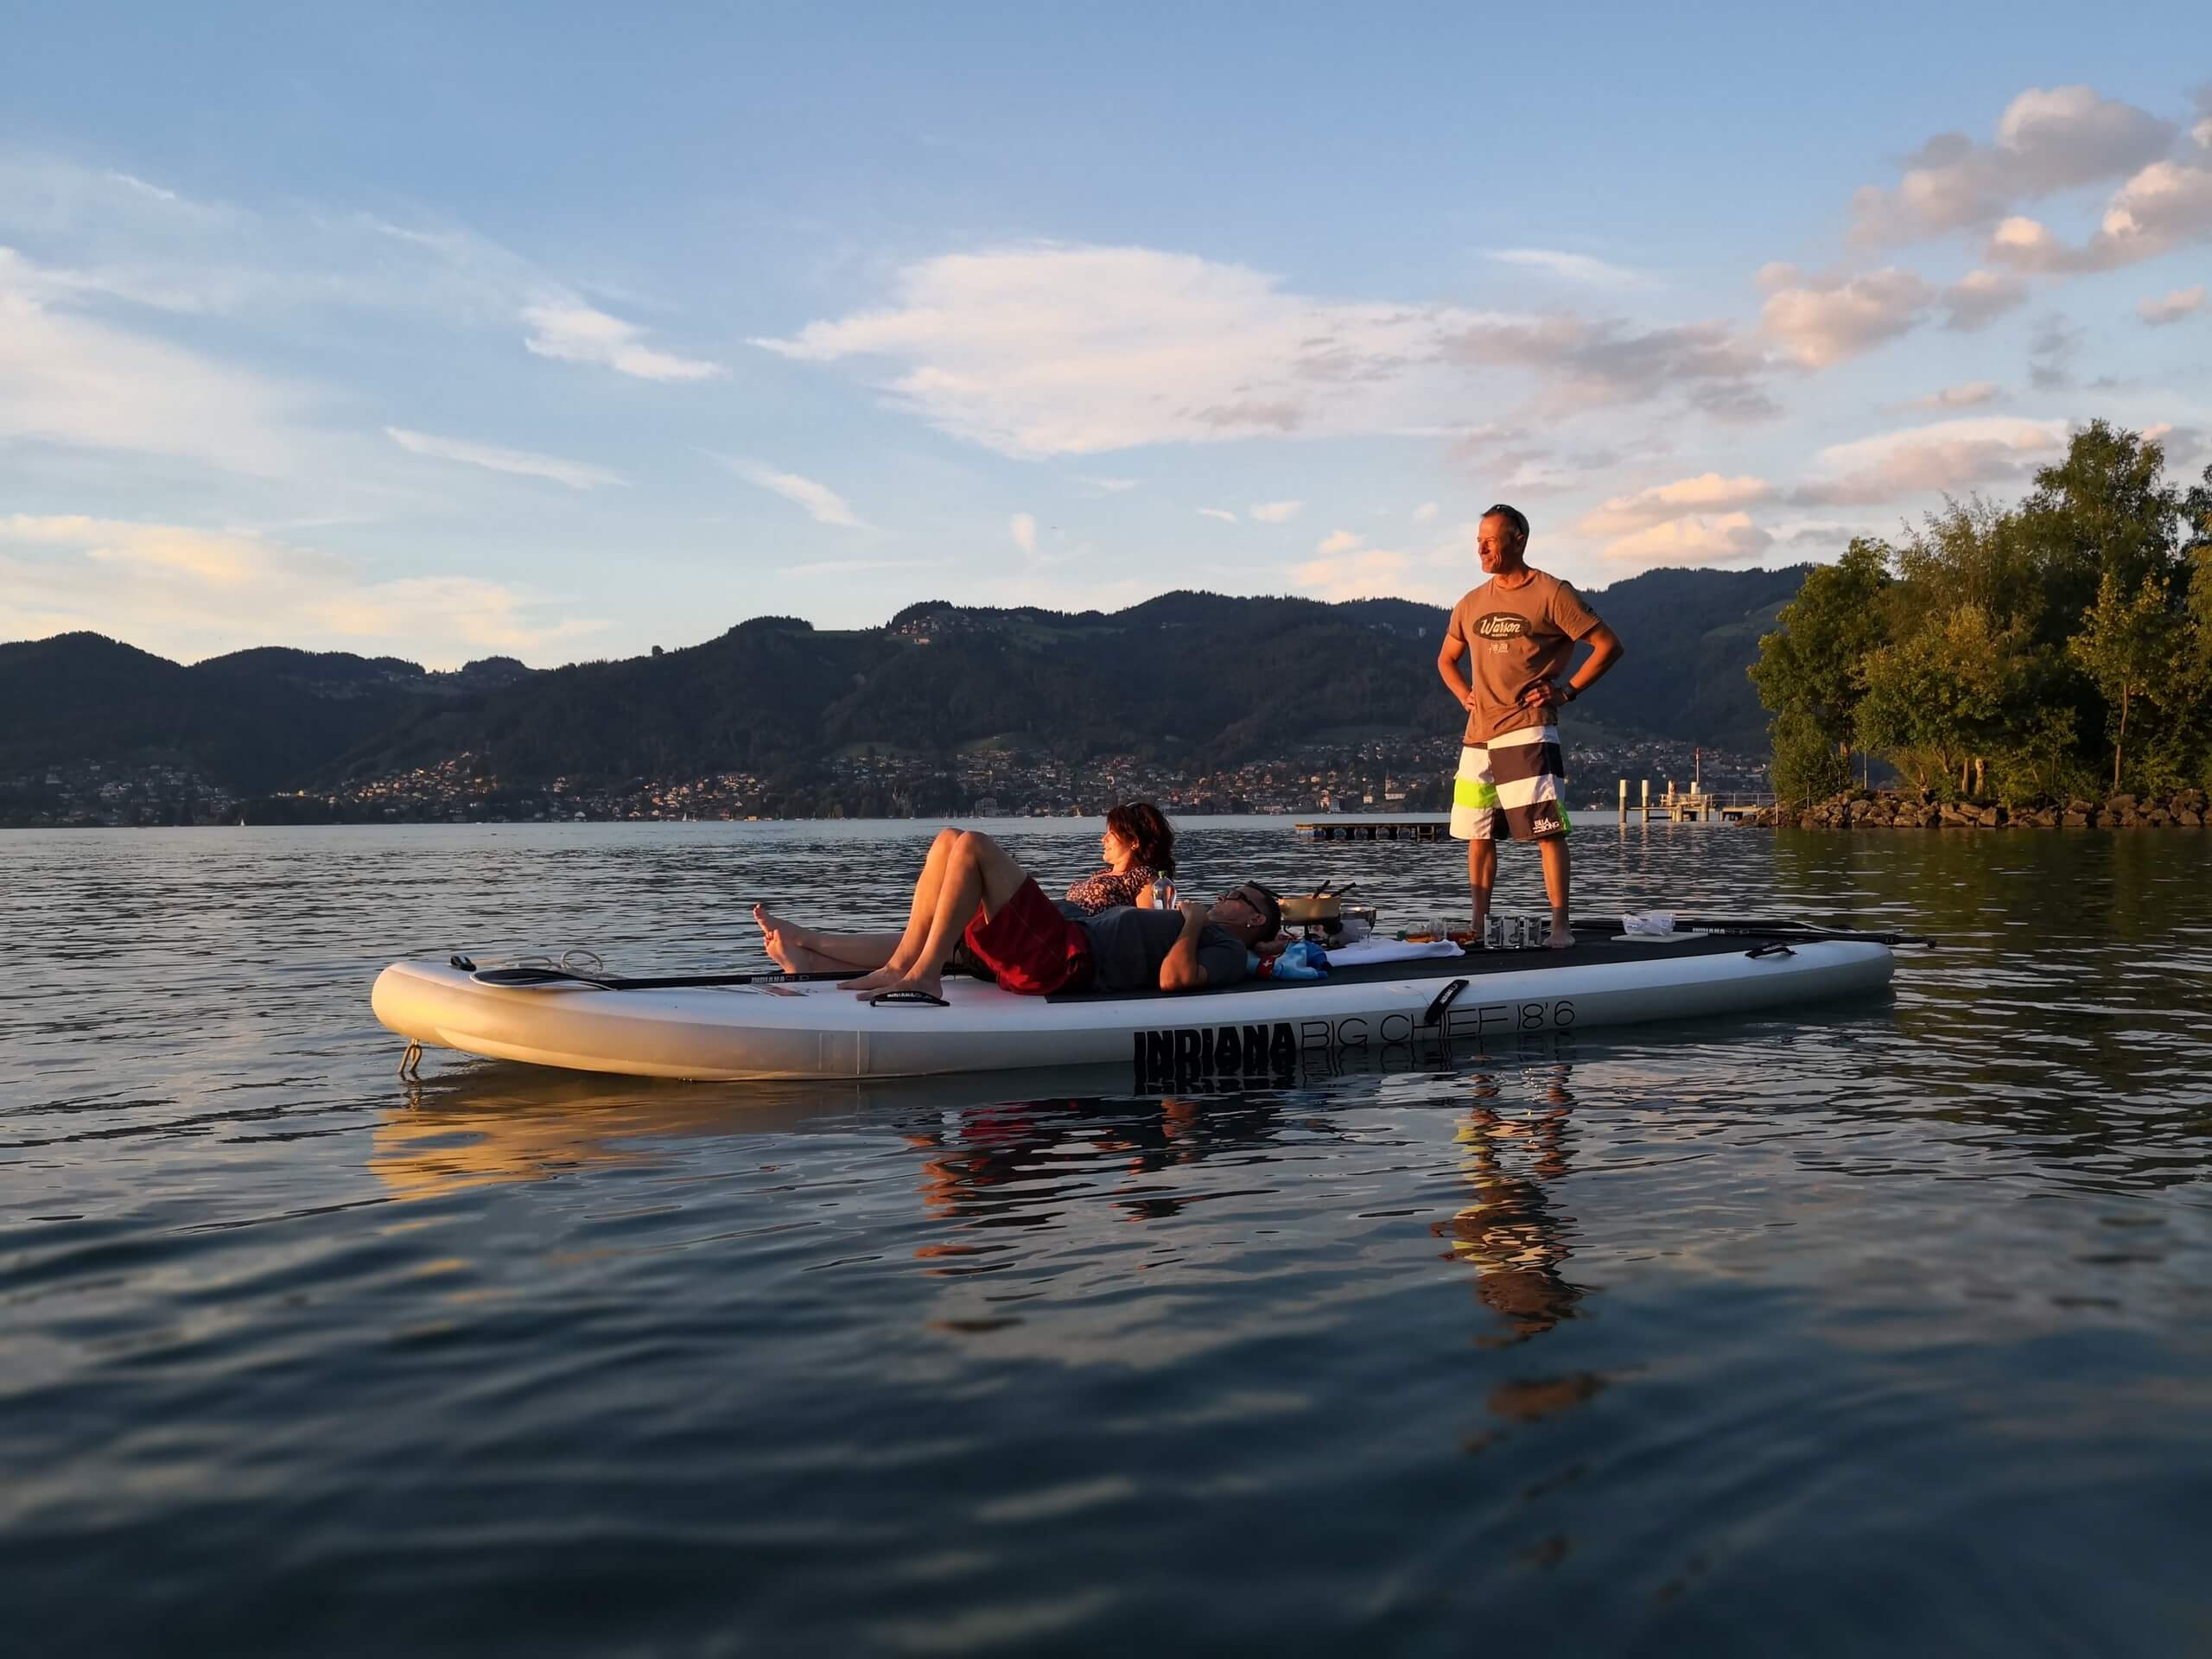 absolut-oudoor-und-events-sup-thunersee-sommer